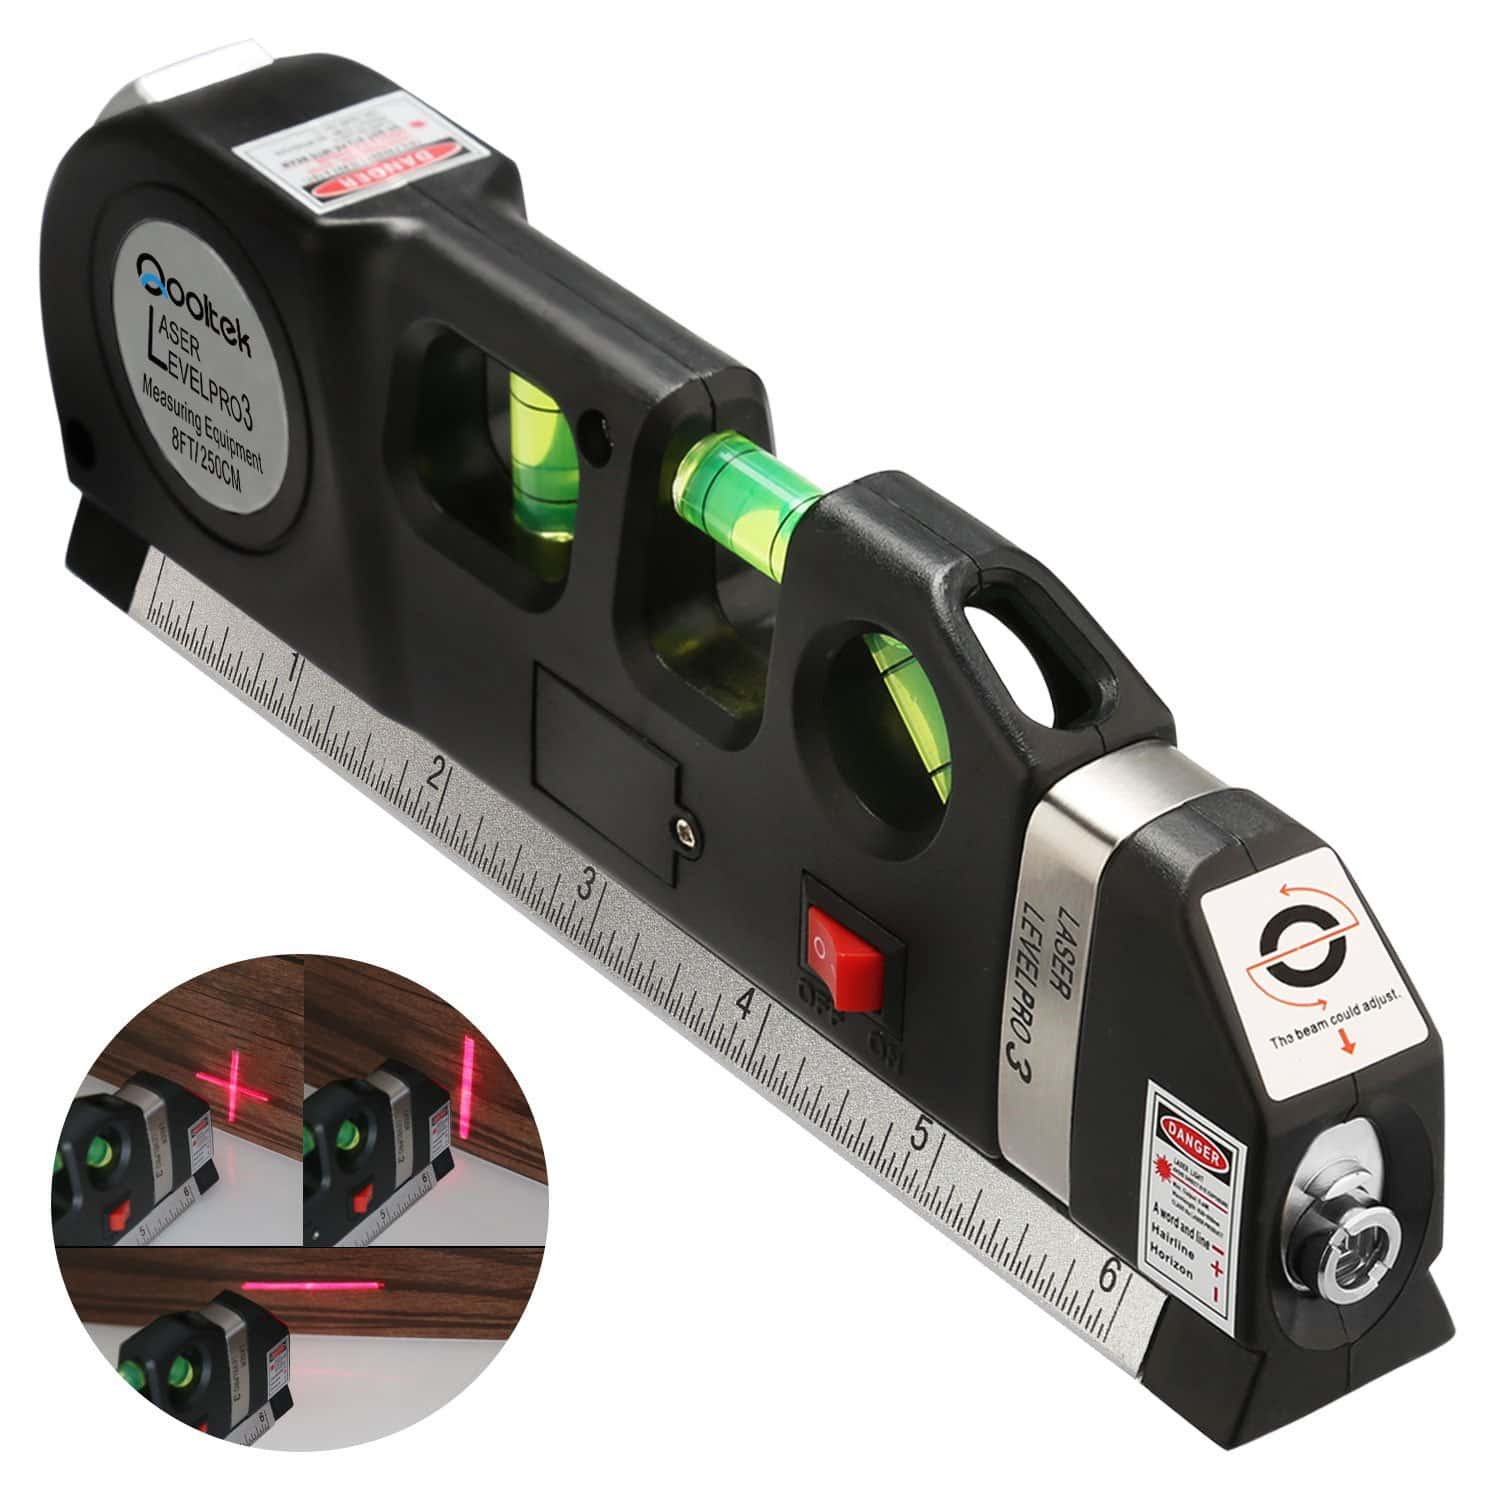 Qooltek Multipurpose Laser Level laser measure Line 8ft+ Measure Tape Ruler Adjusted Standard